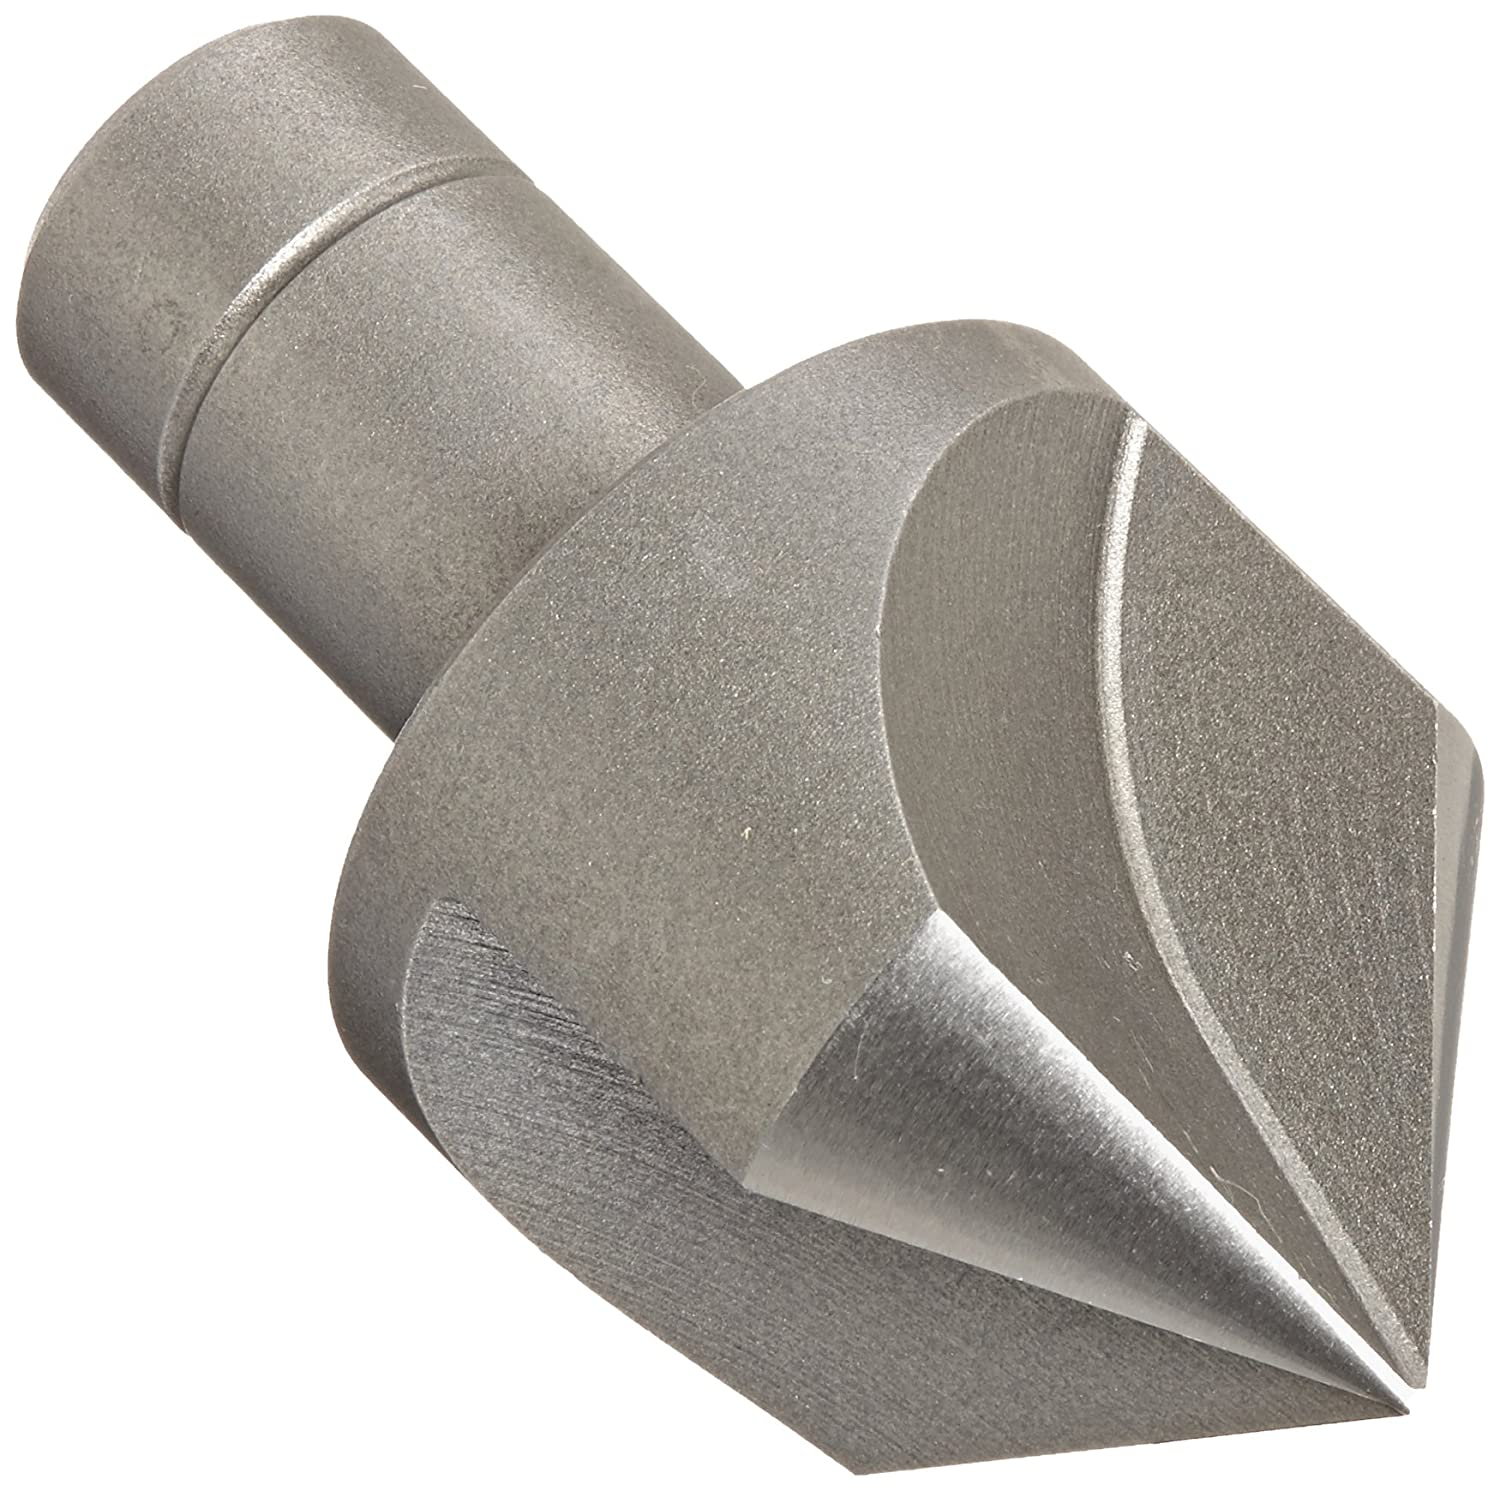 Finish Bright Uncoated 90 Degree Point Angle 3//4 Shank Diameter KEO 55327 Cobalt Steel Single-End Countersink 3 Flutes 1-1//2 Body Diameter Round Shank